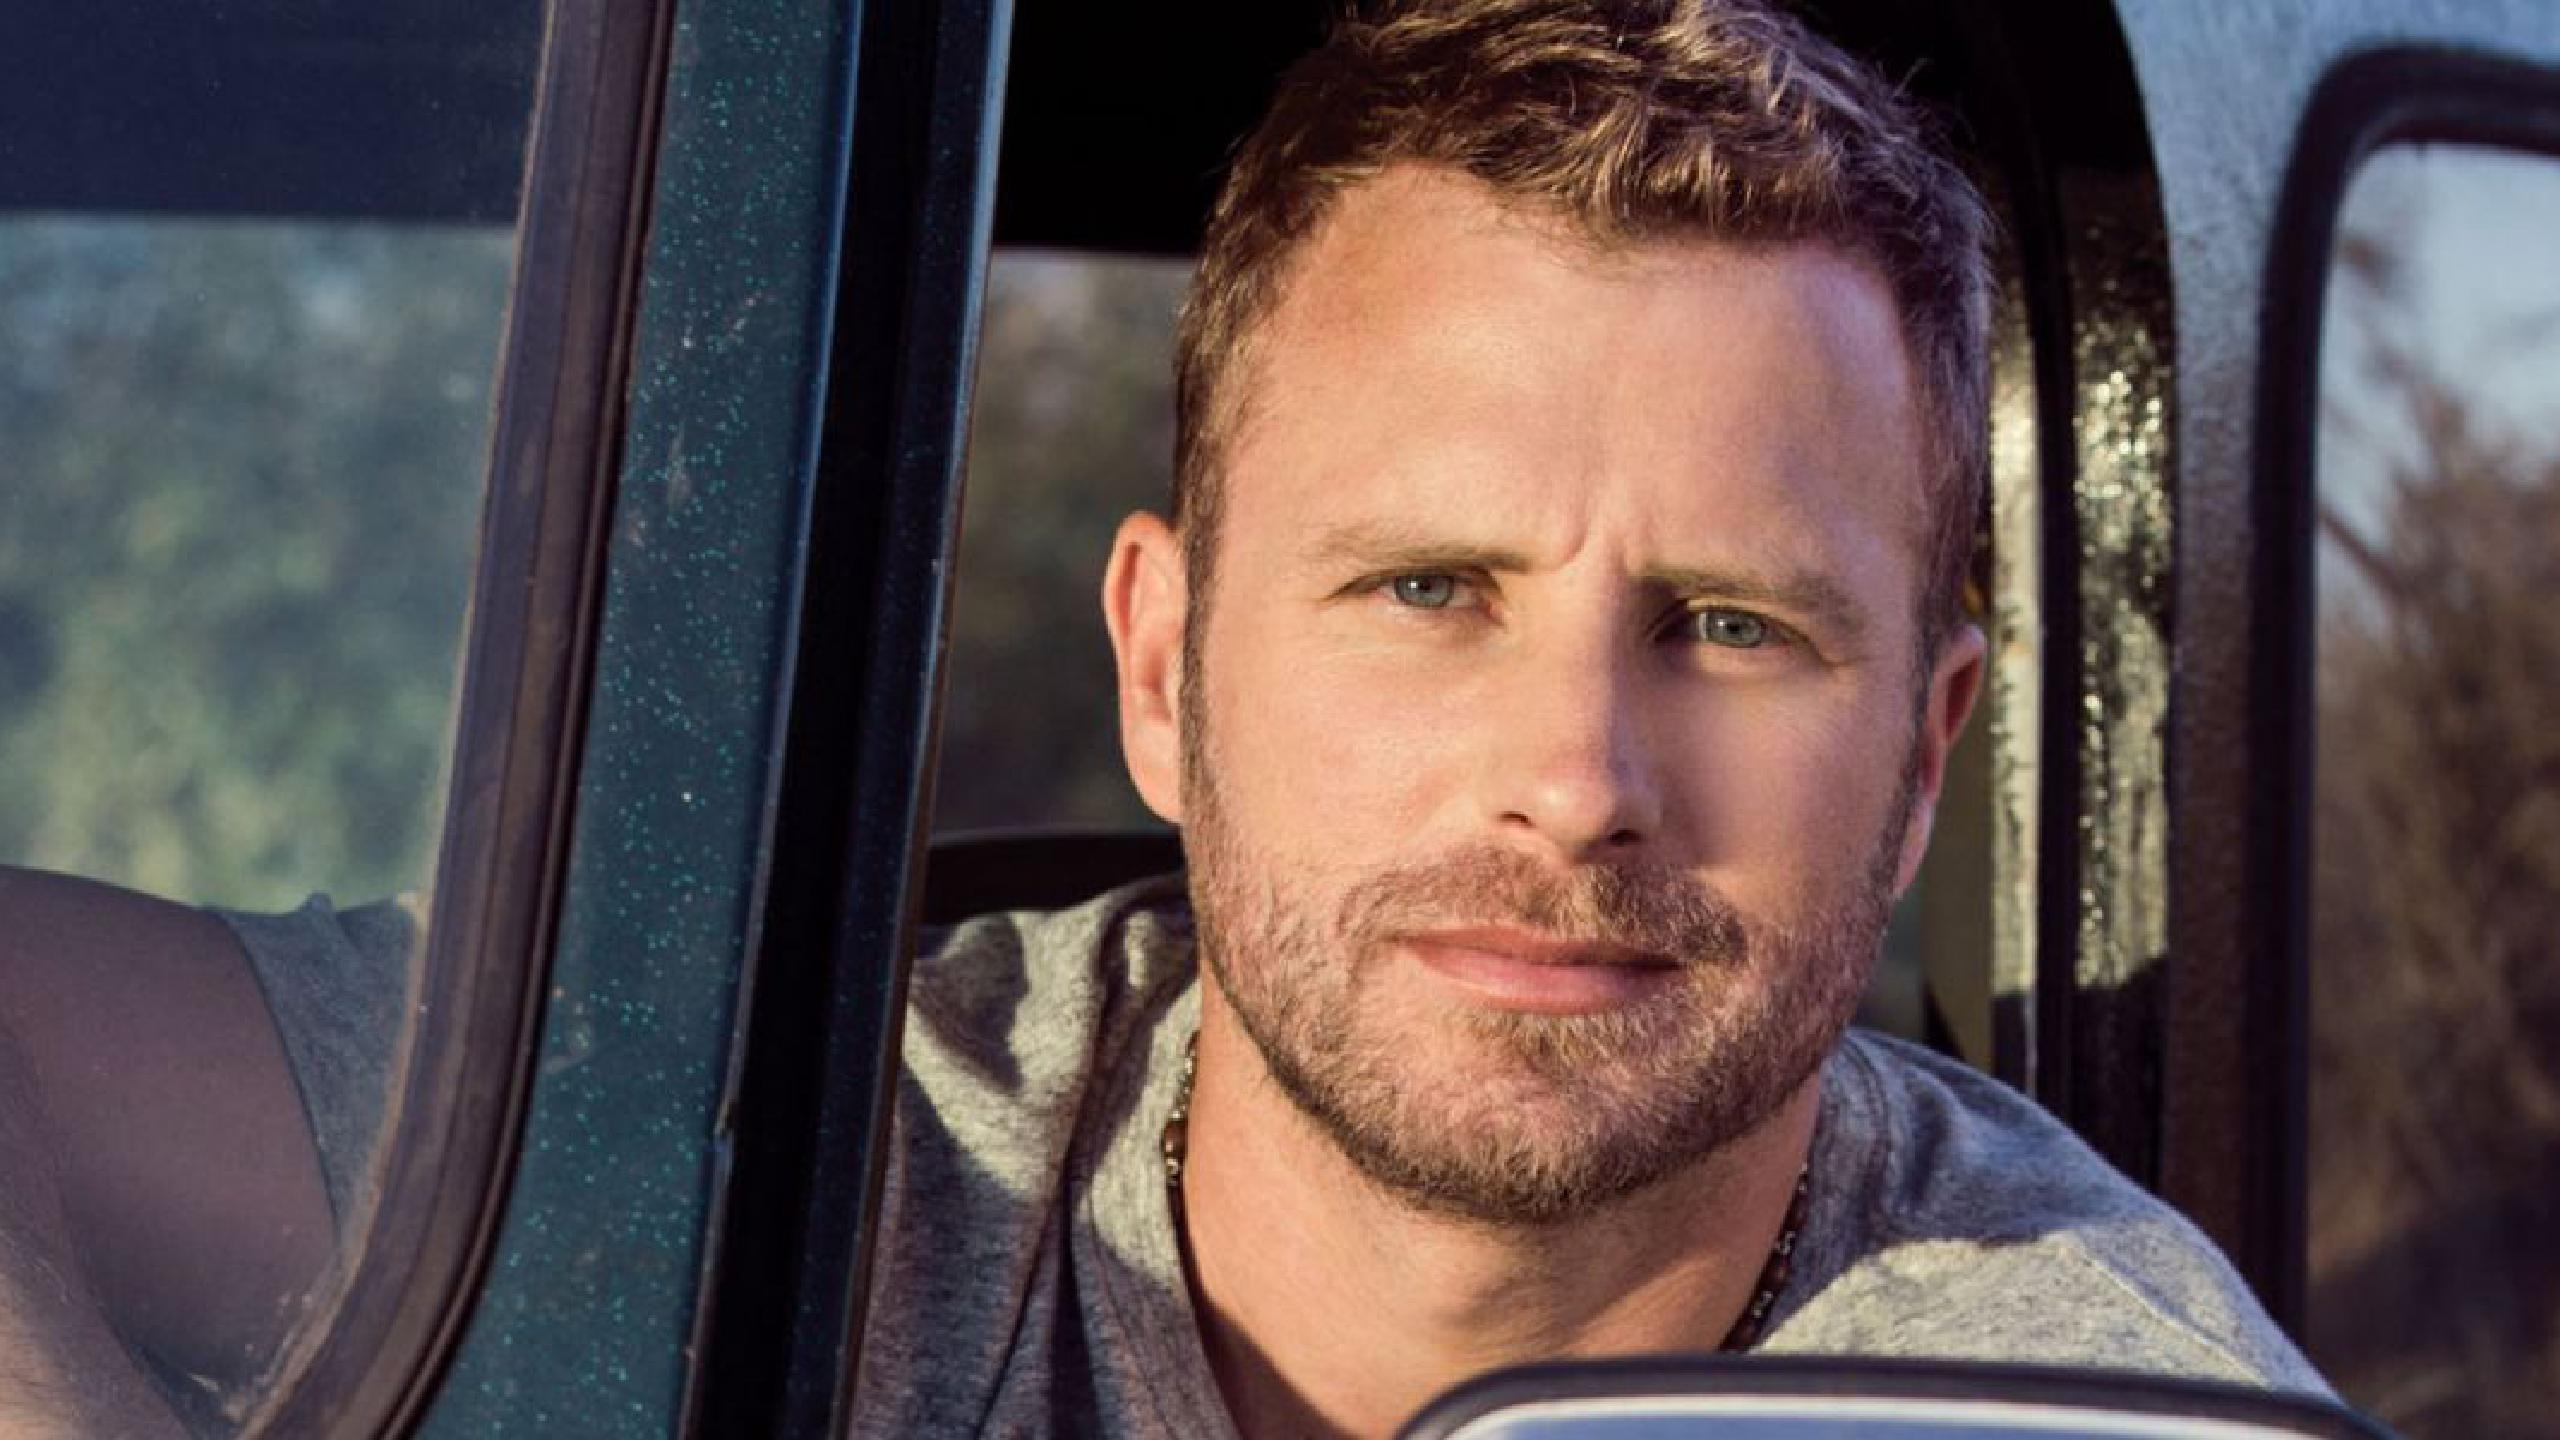 dierks bentley tour dates 2019 2020. dierks bentley tickets and